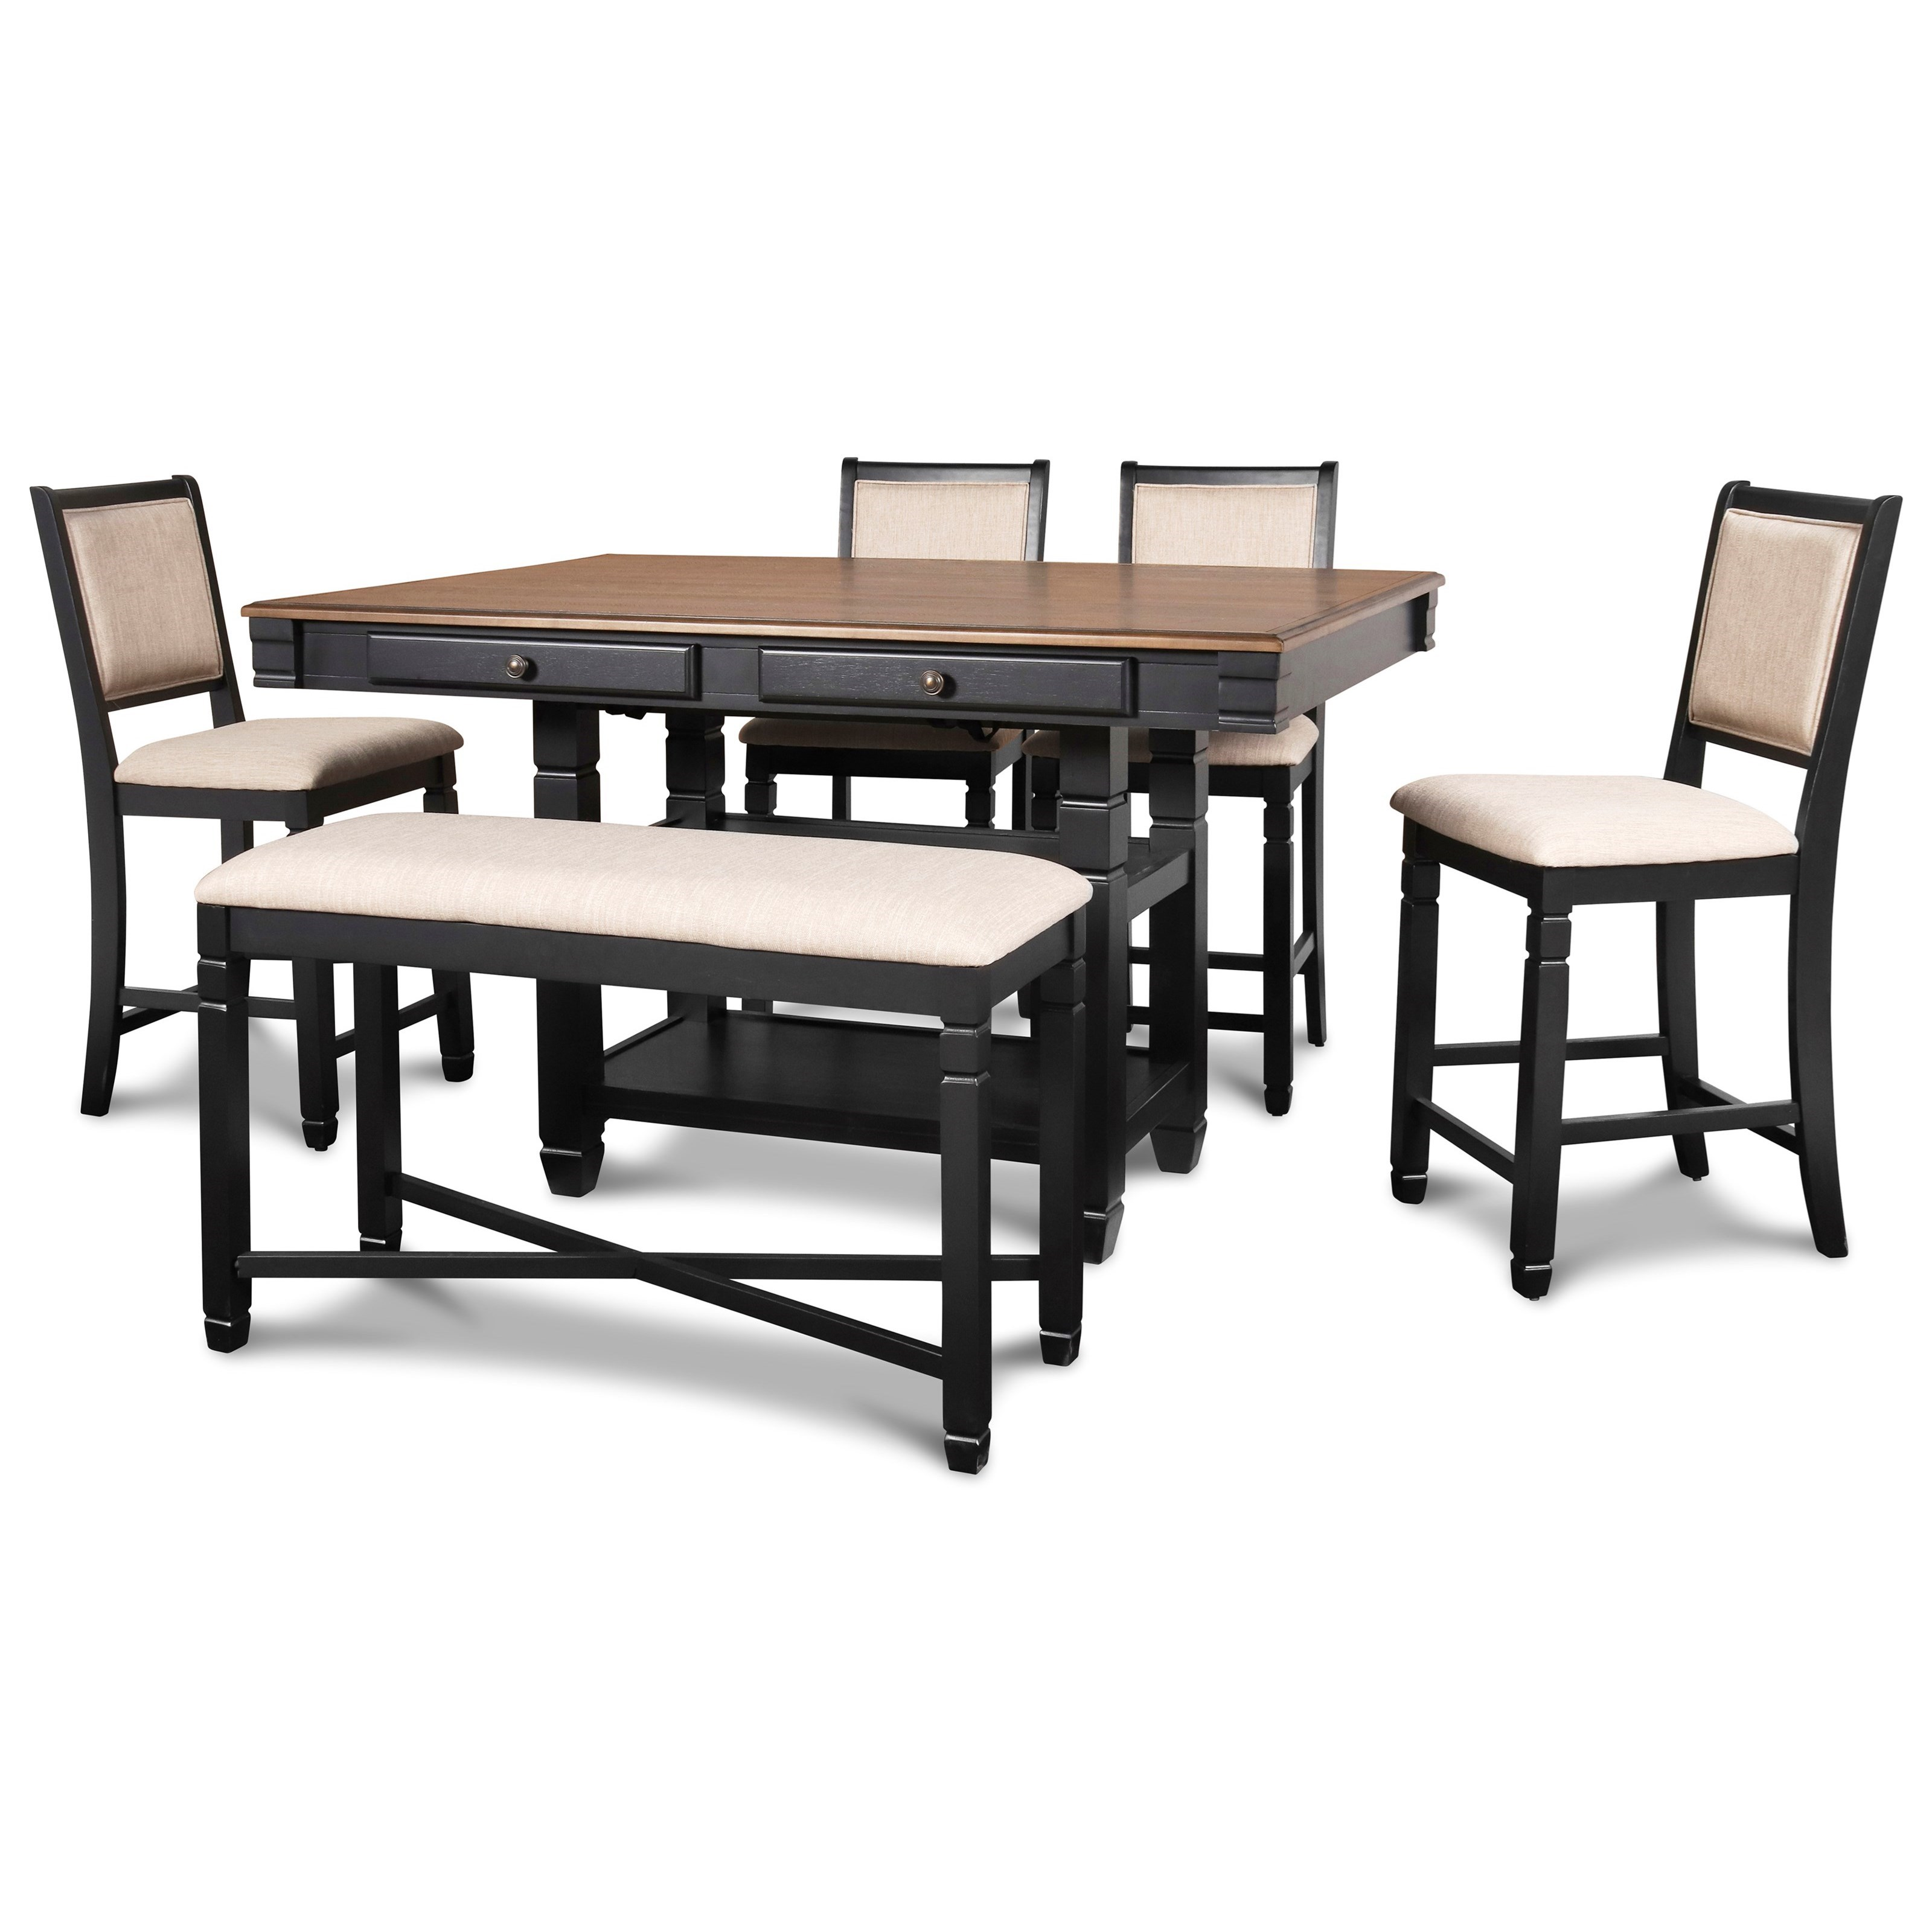 Prairie Point Table & Chair Set with Bench by New Classic at H.L. Stephens